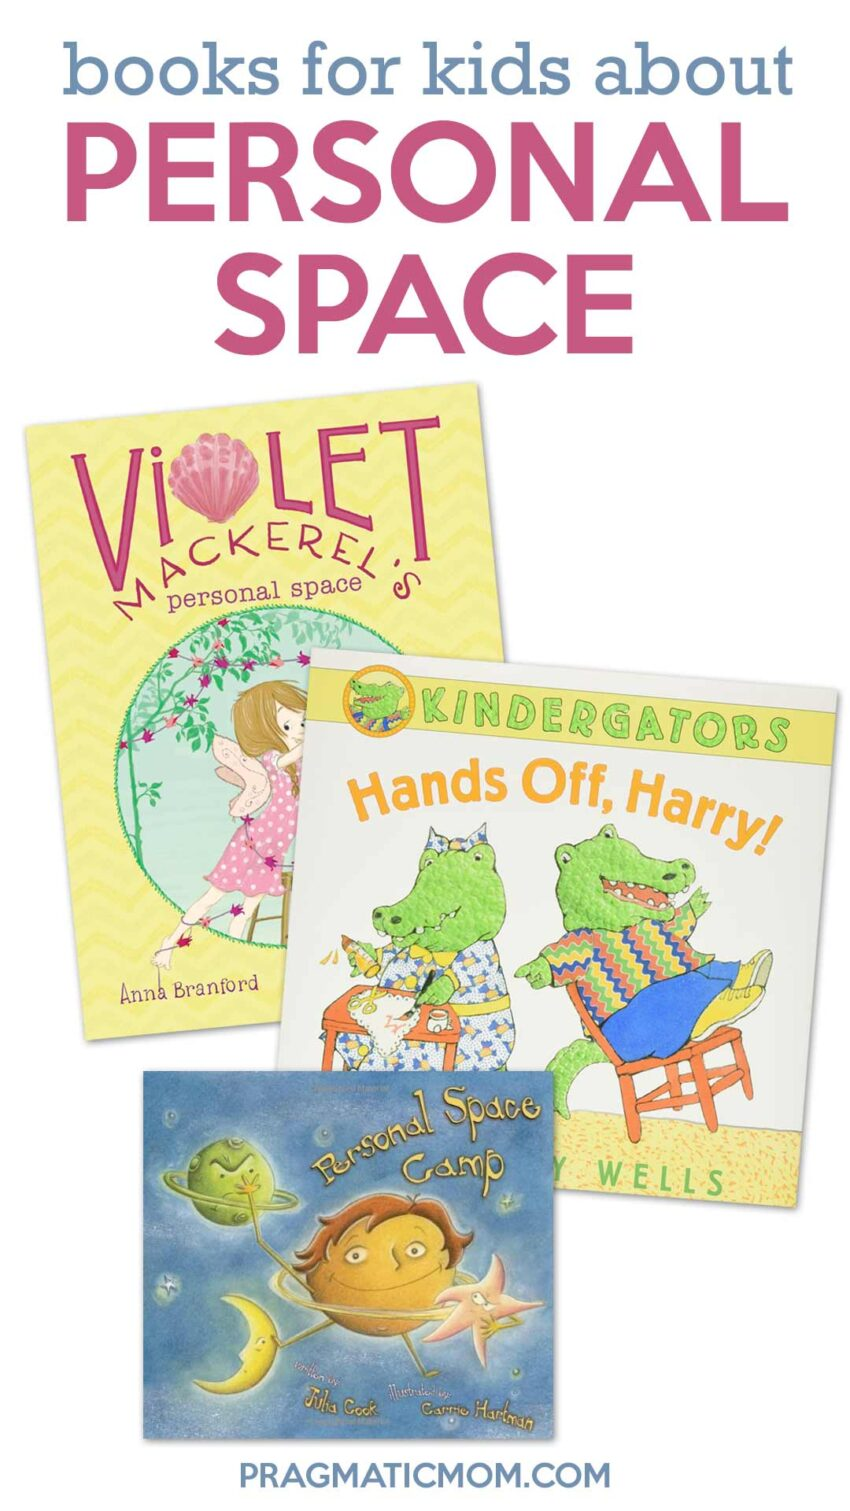 Books for Kids about Personal Space